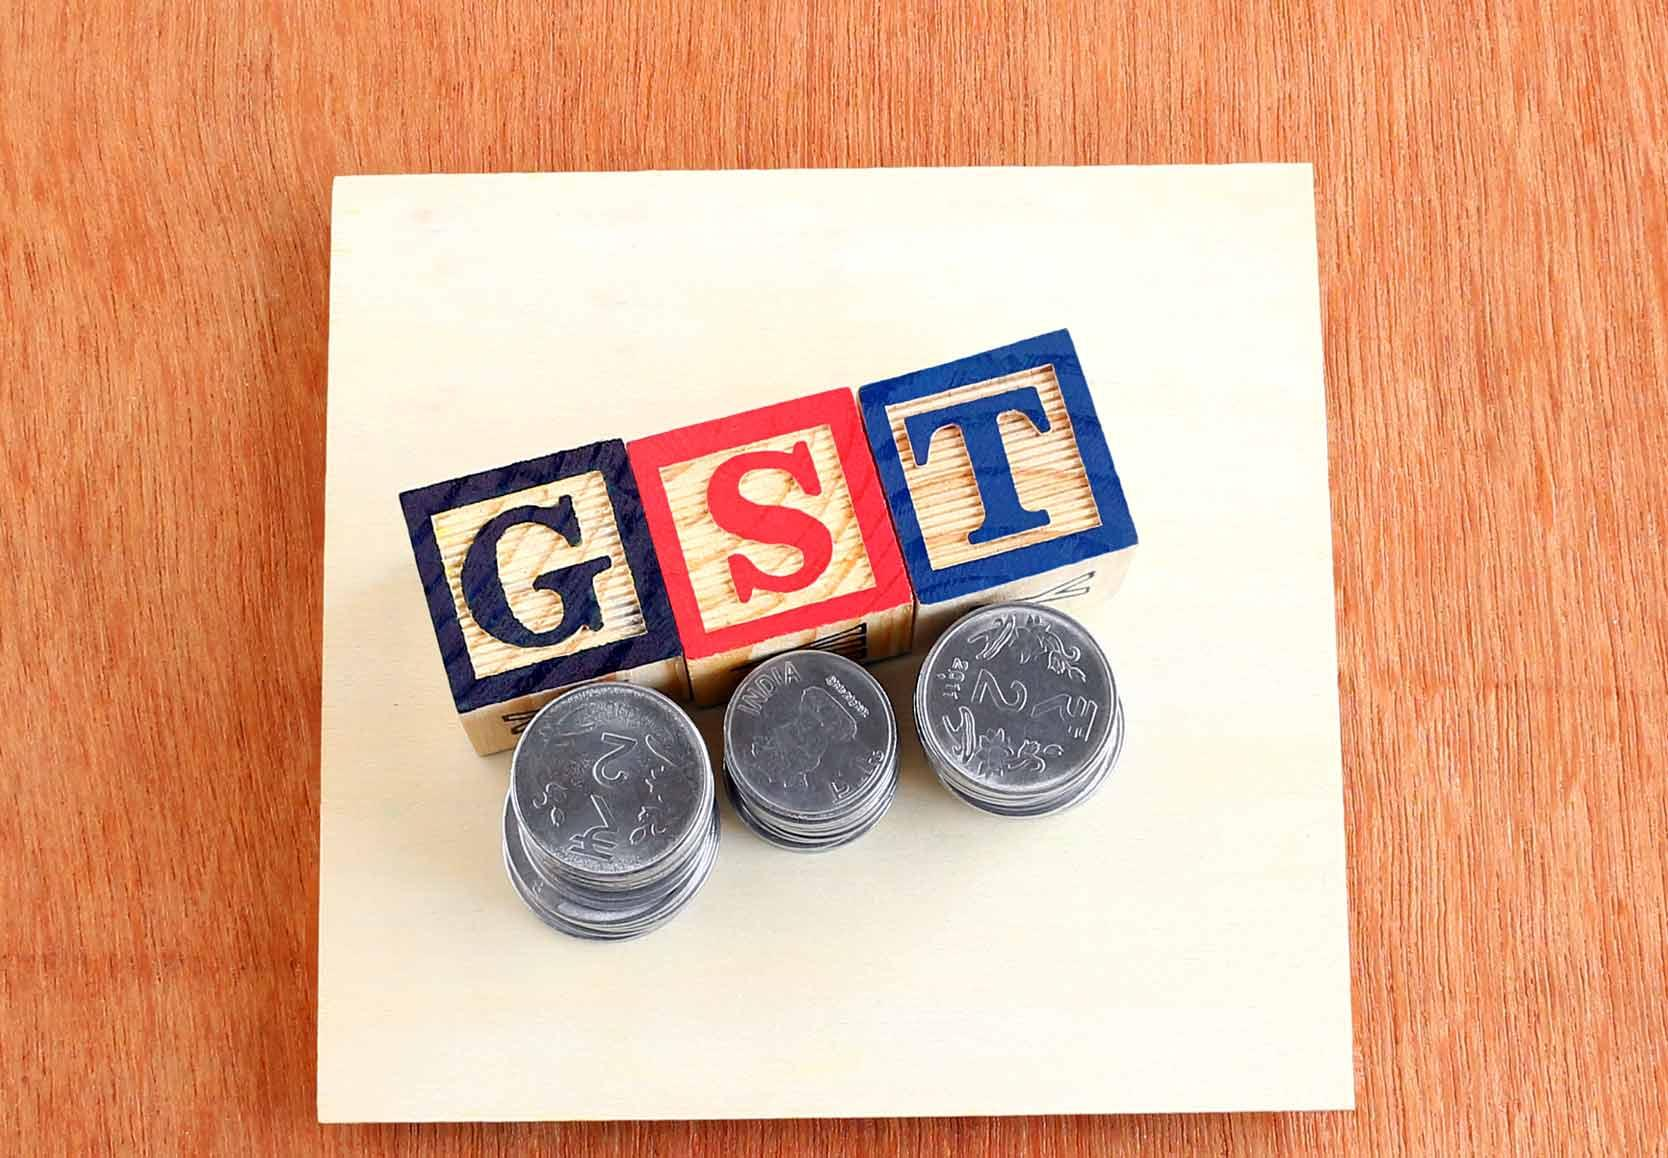 Next step in GST